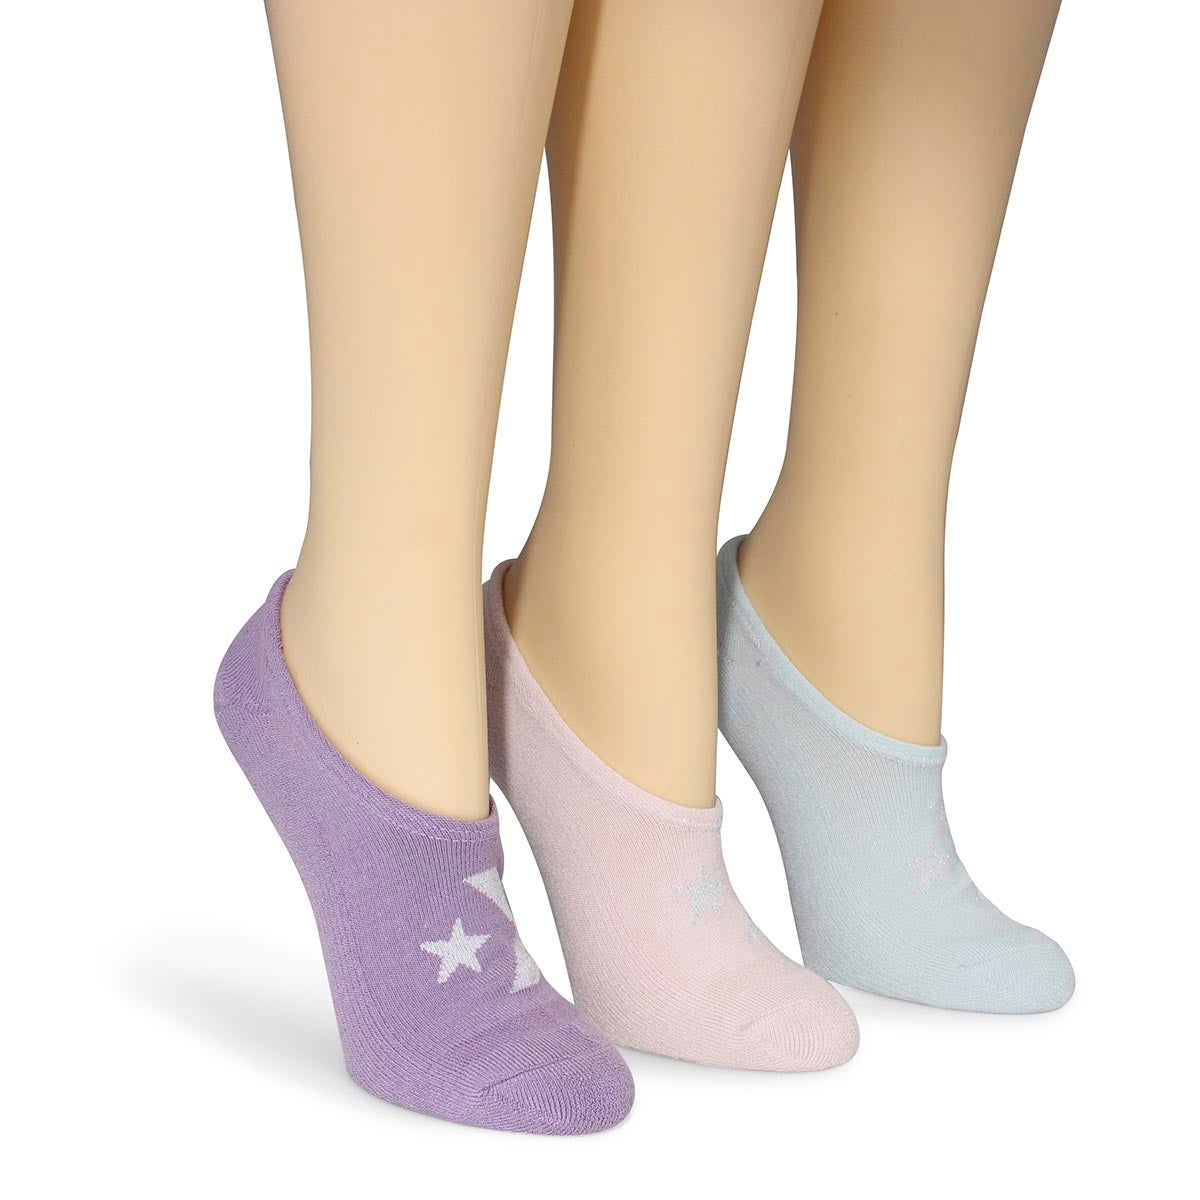 Lds Lurex Star multi no show sock 3 pk